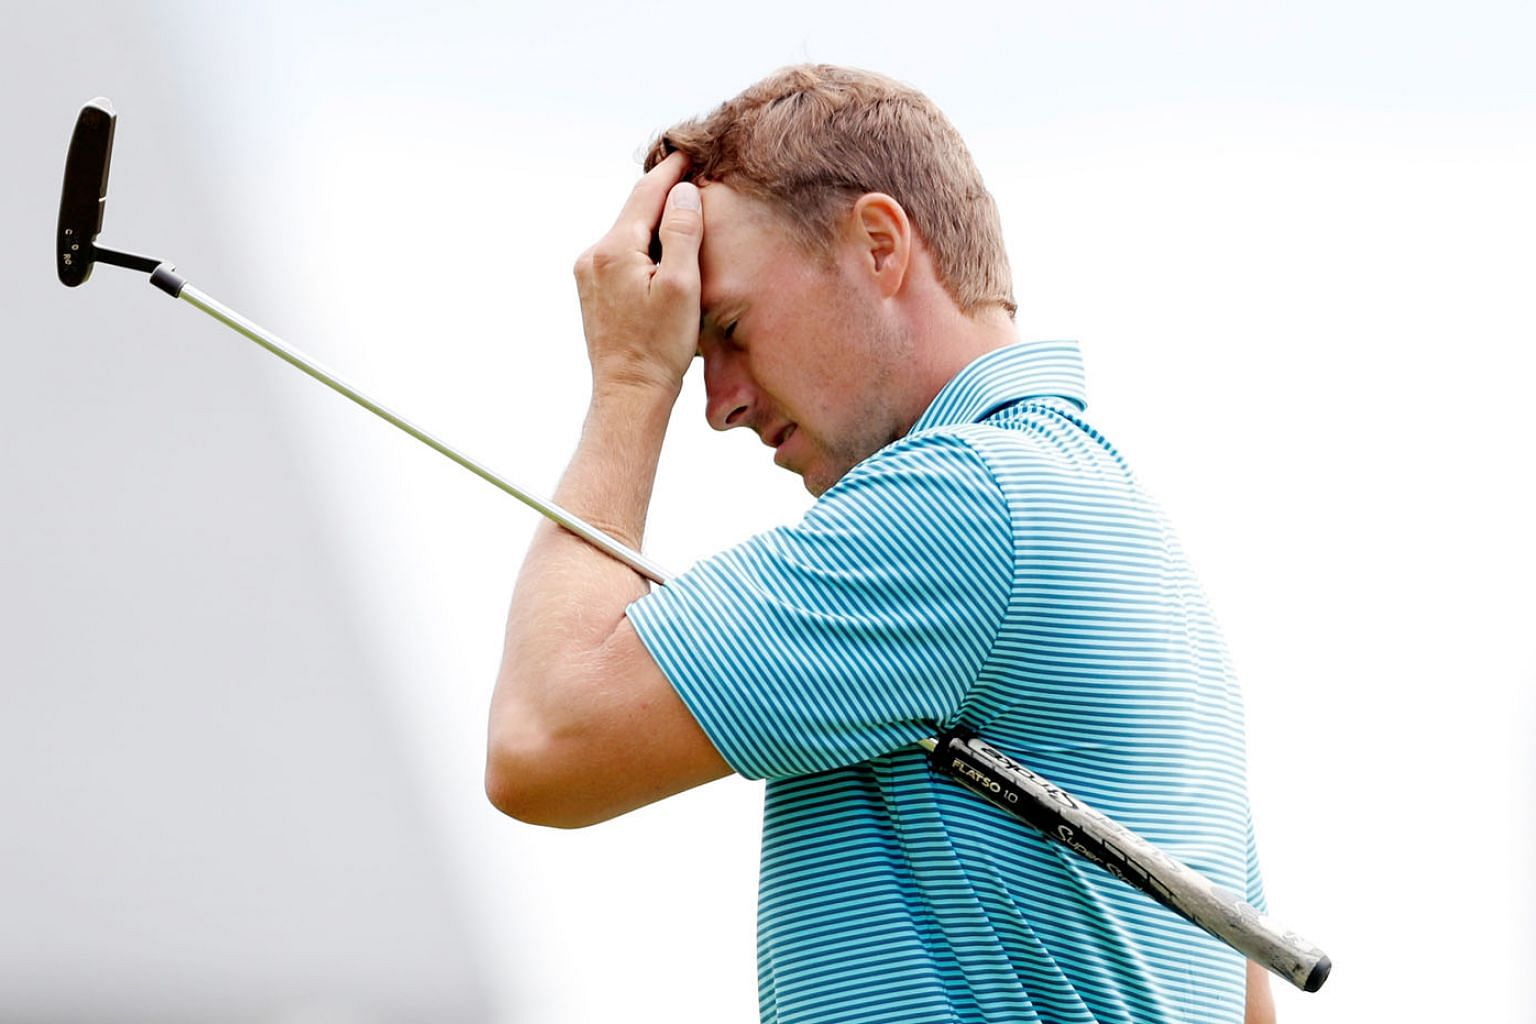 Defending champion Jordan Spieth shows his frustration at the end of his first round at The Open Championship in Carnoustie, Scotland.